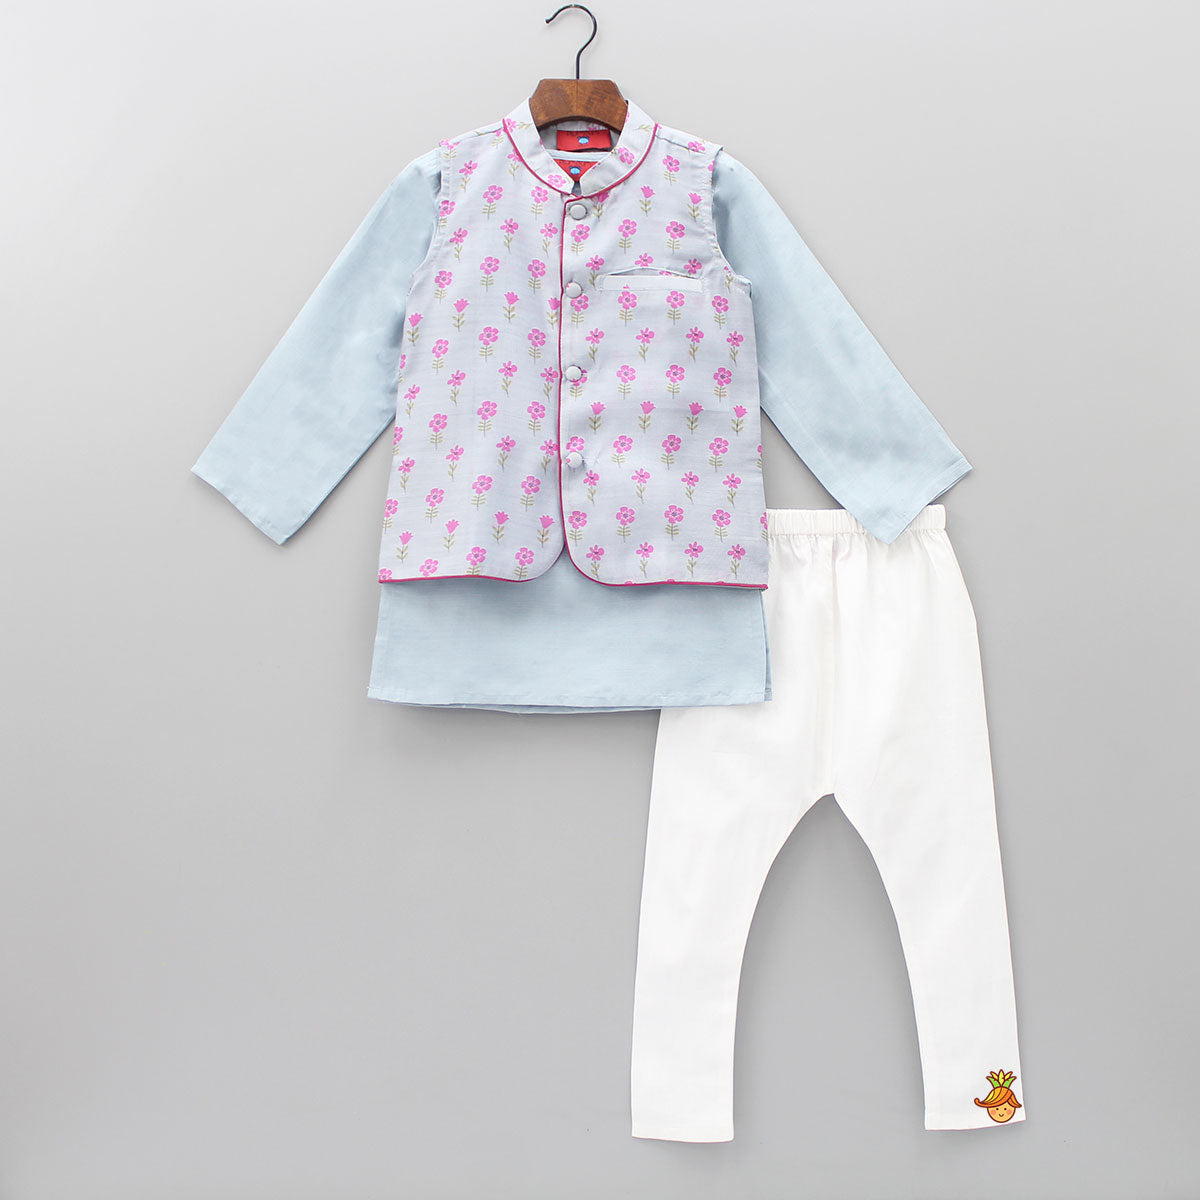 Pre Order: Kurta With Flower Printed Jacket And Pyjama